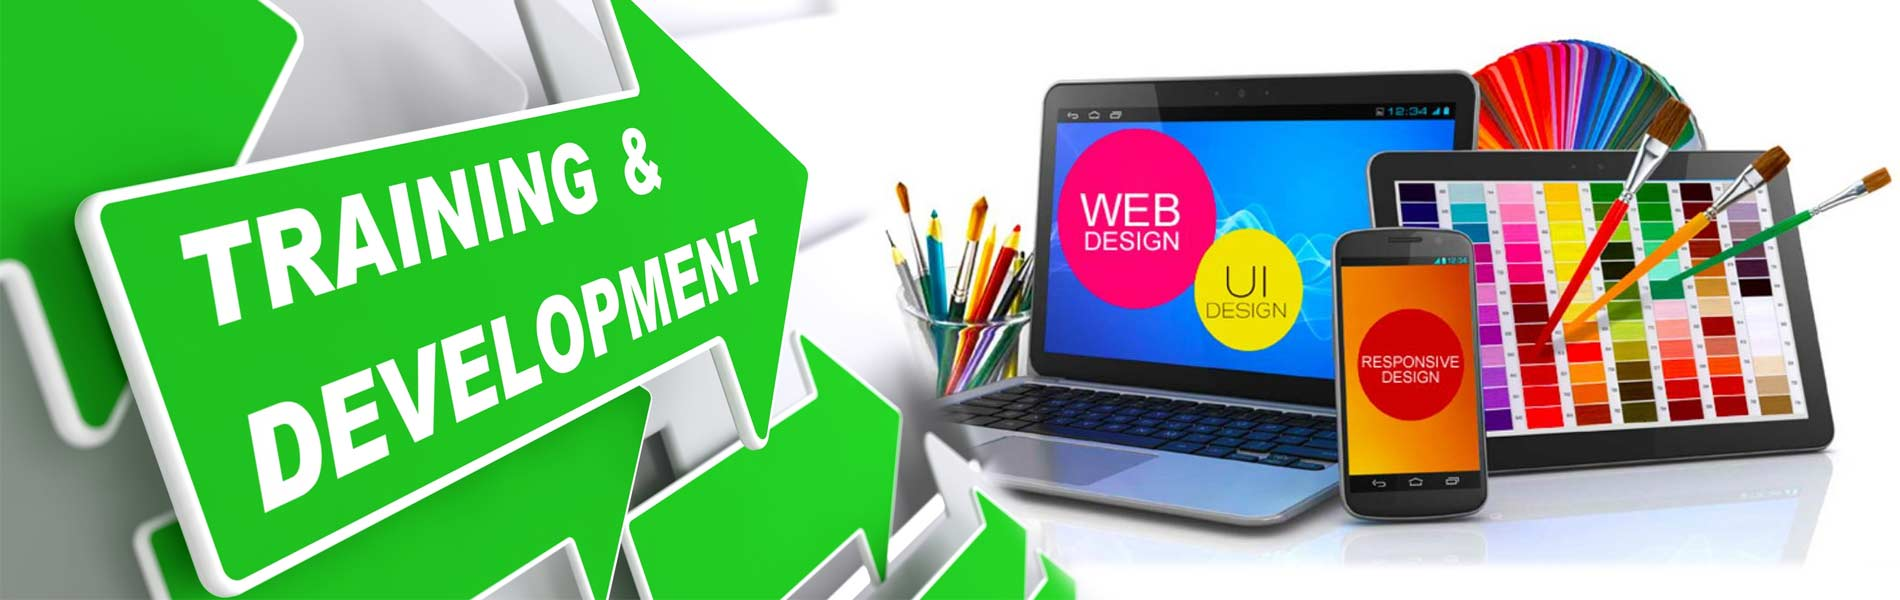 webdesign-training-in-chennai